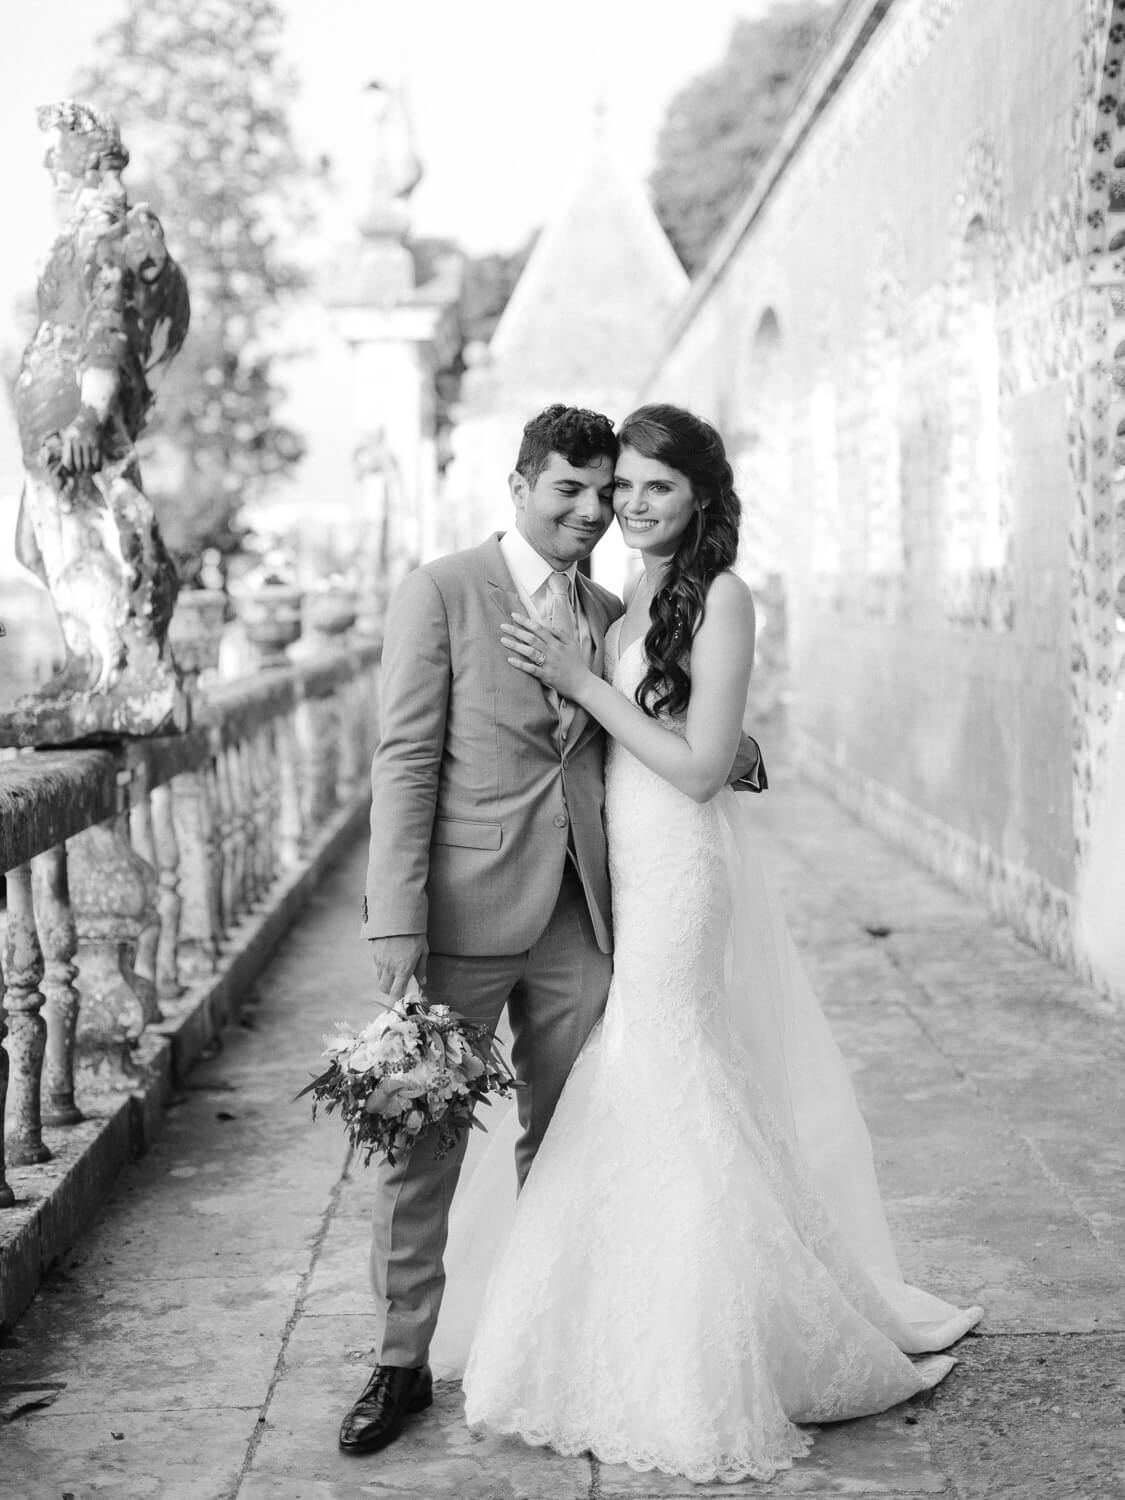 sweet black and white wedding portrait by Portugal Wedding Photographer